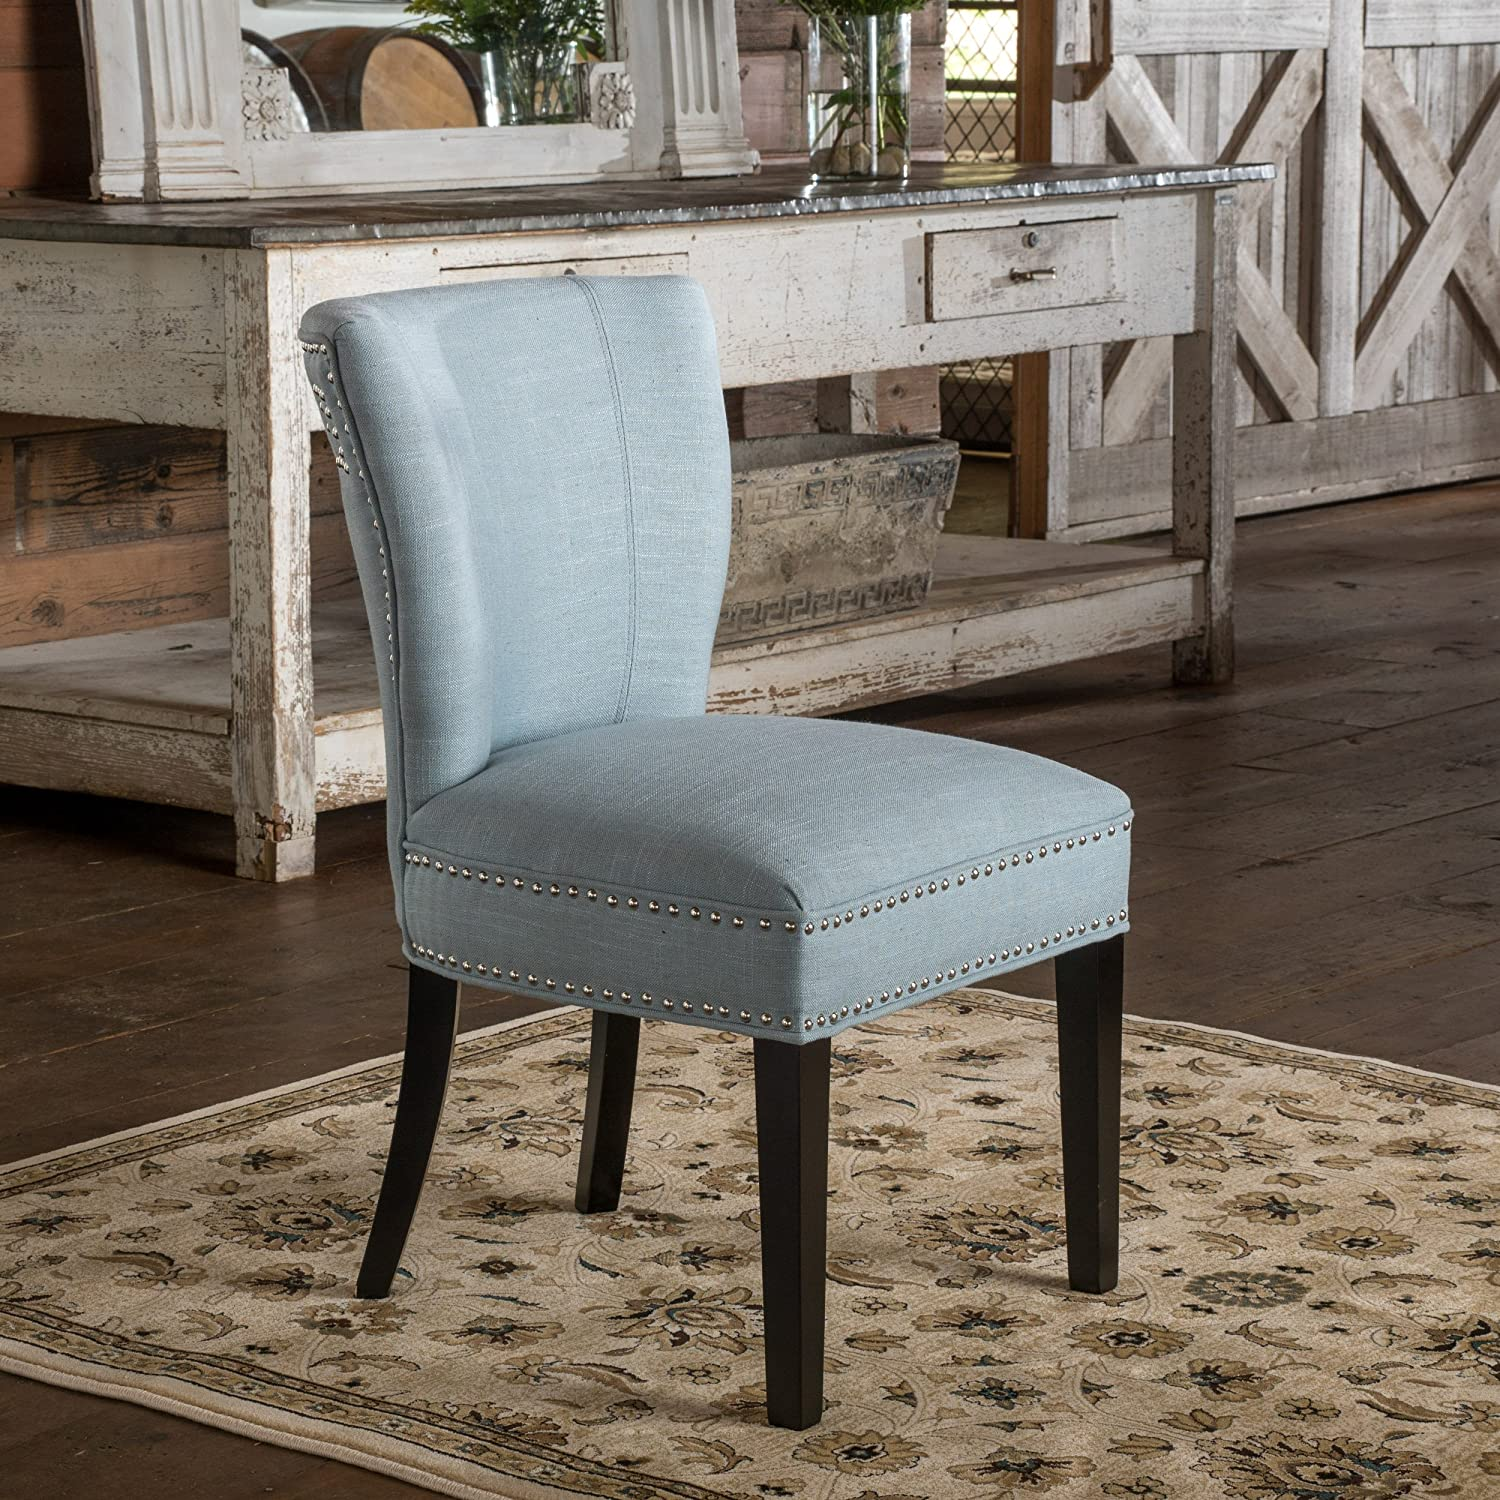 Christopher Knight Home Jackie Dining Chair, Ocean